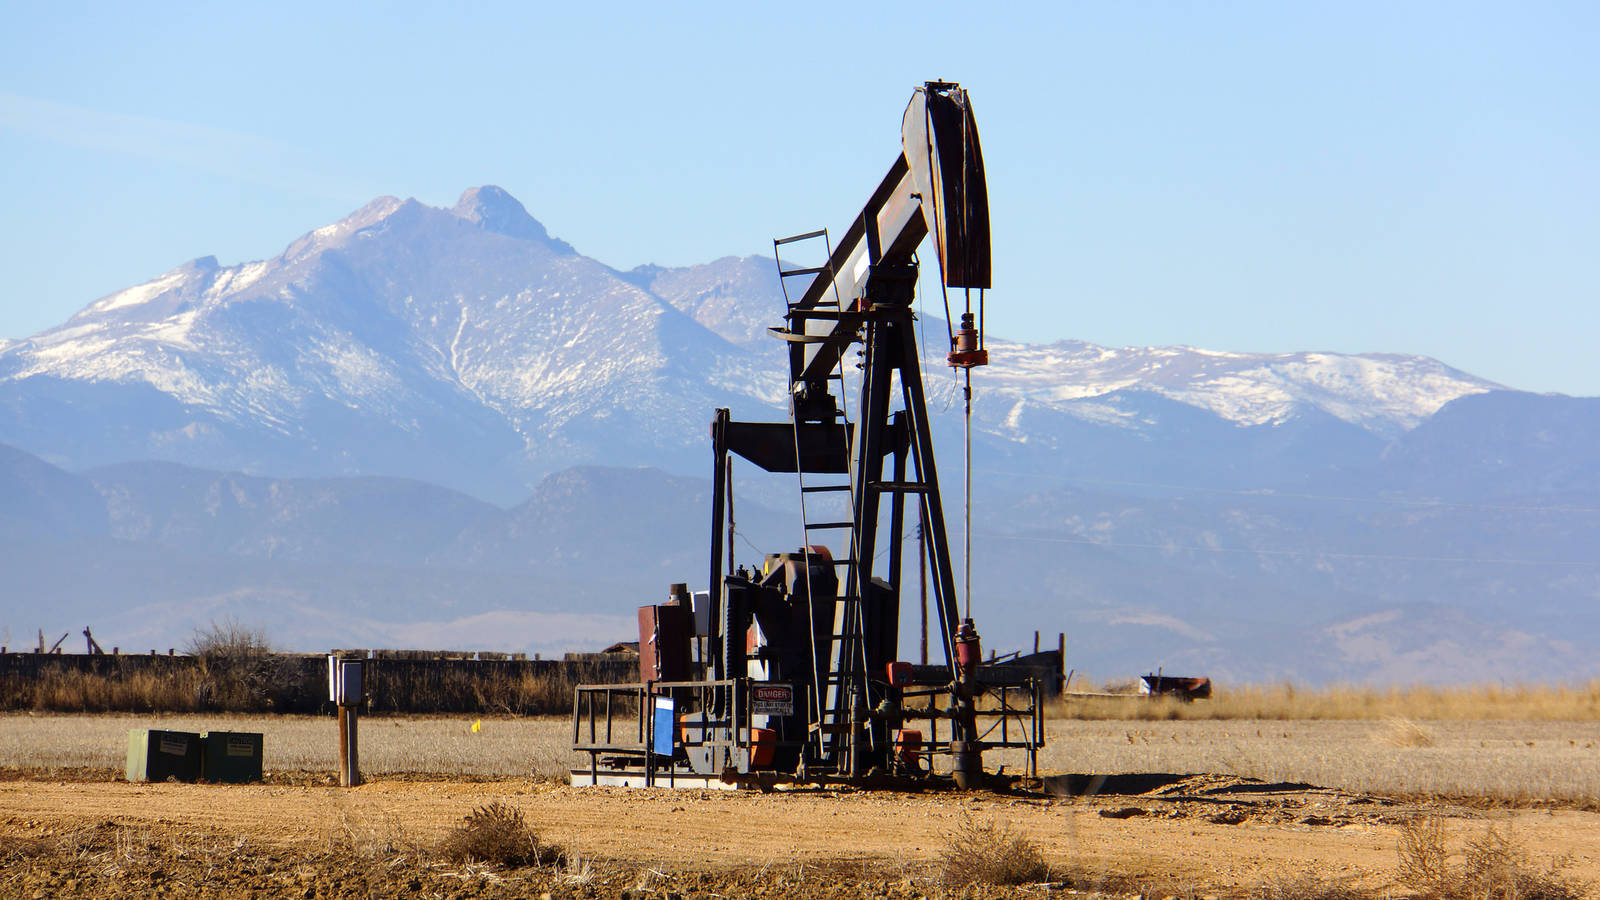 BLM Hits Pause on Leasing Nearly 150,000 Acres for Oil and Gas Development